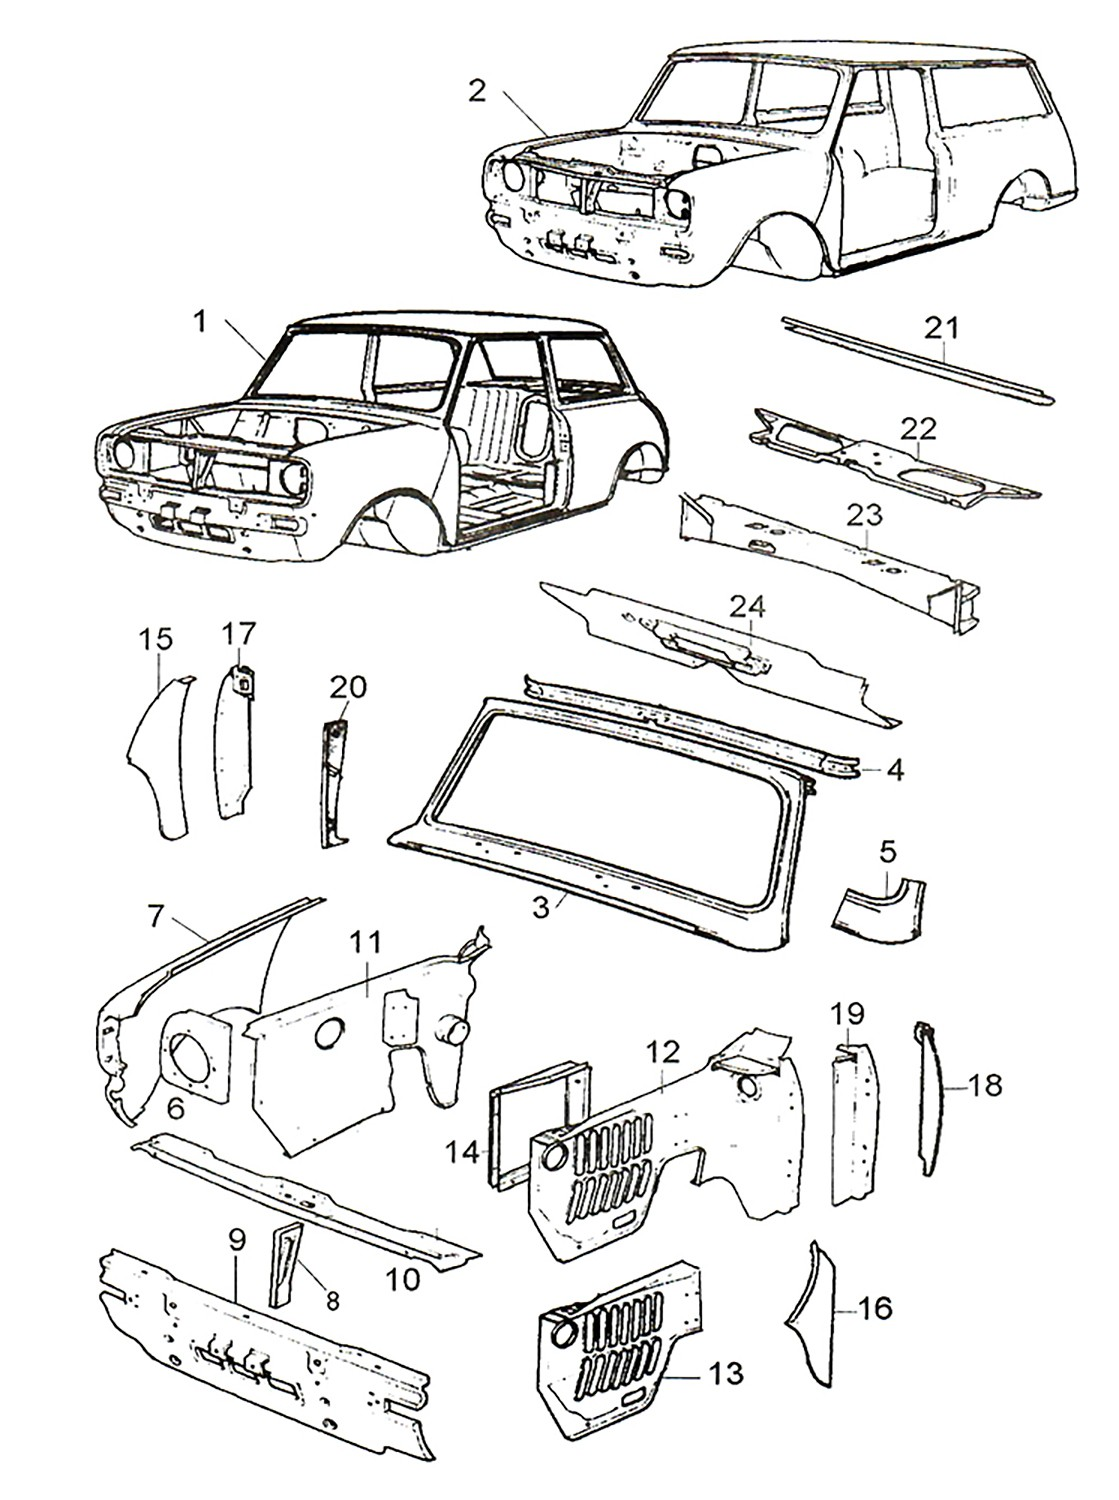 Mini Cooper Start Wiring Diagram. vehicle mini cooper 2003